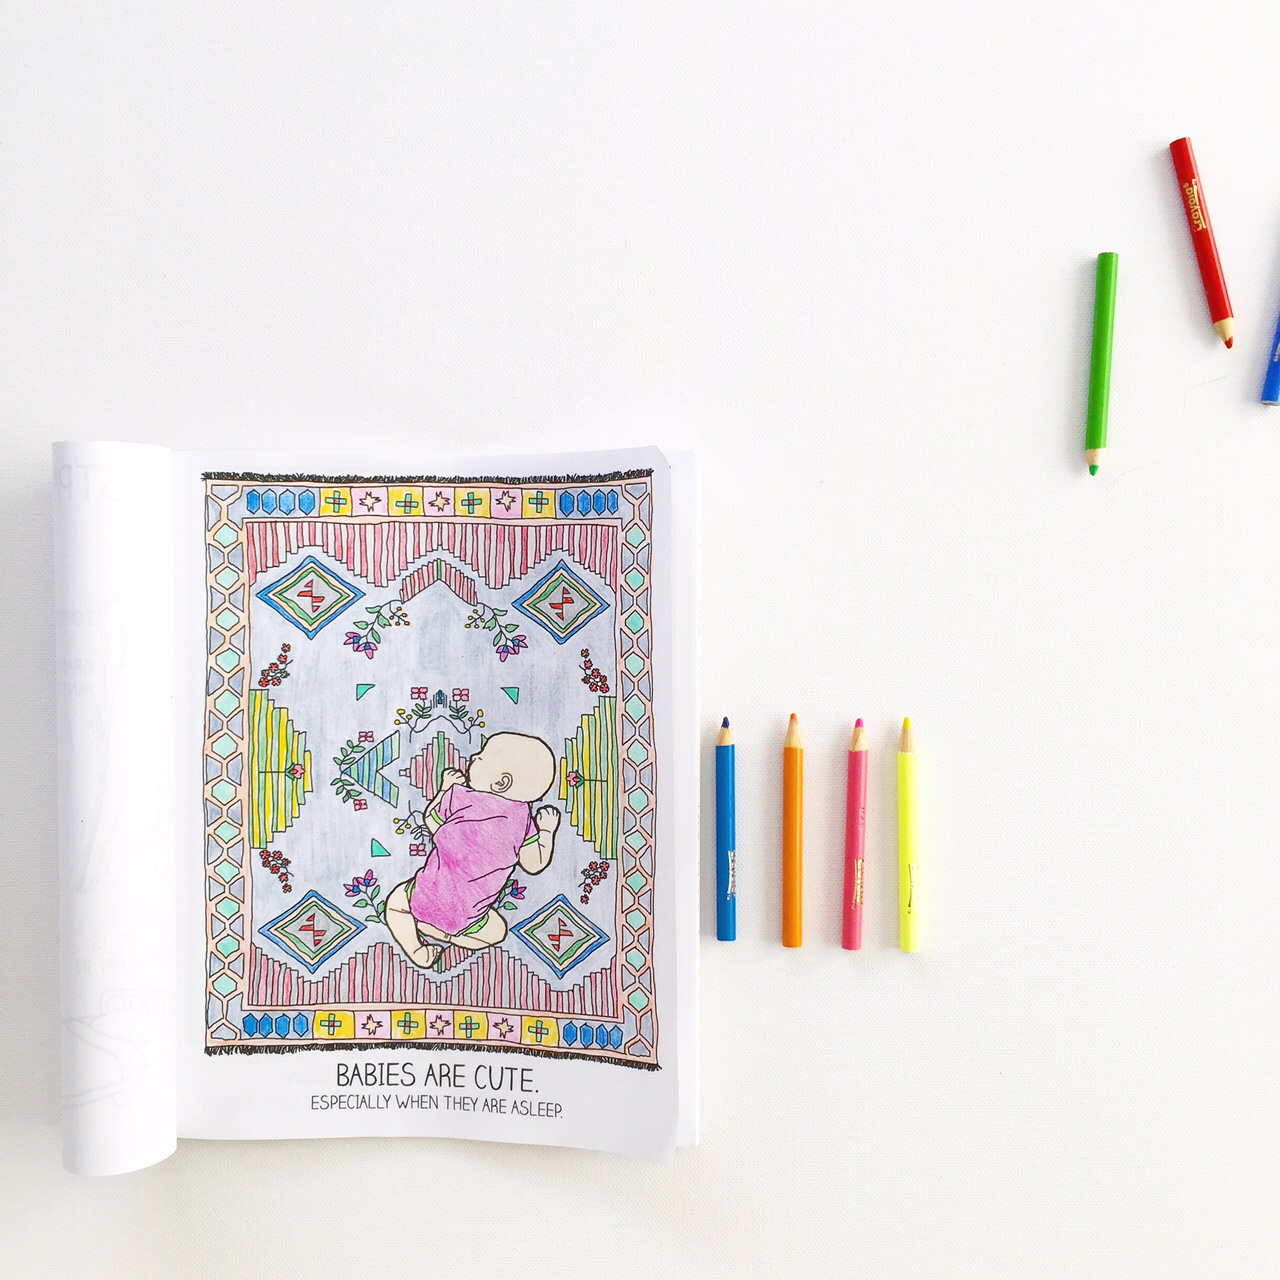 A funny coloring book for new parents